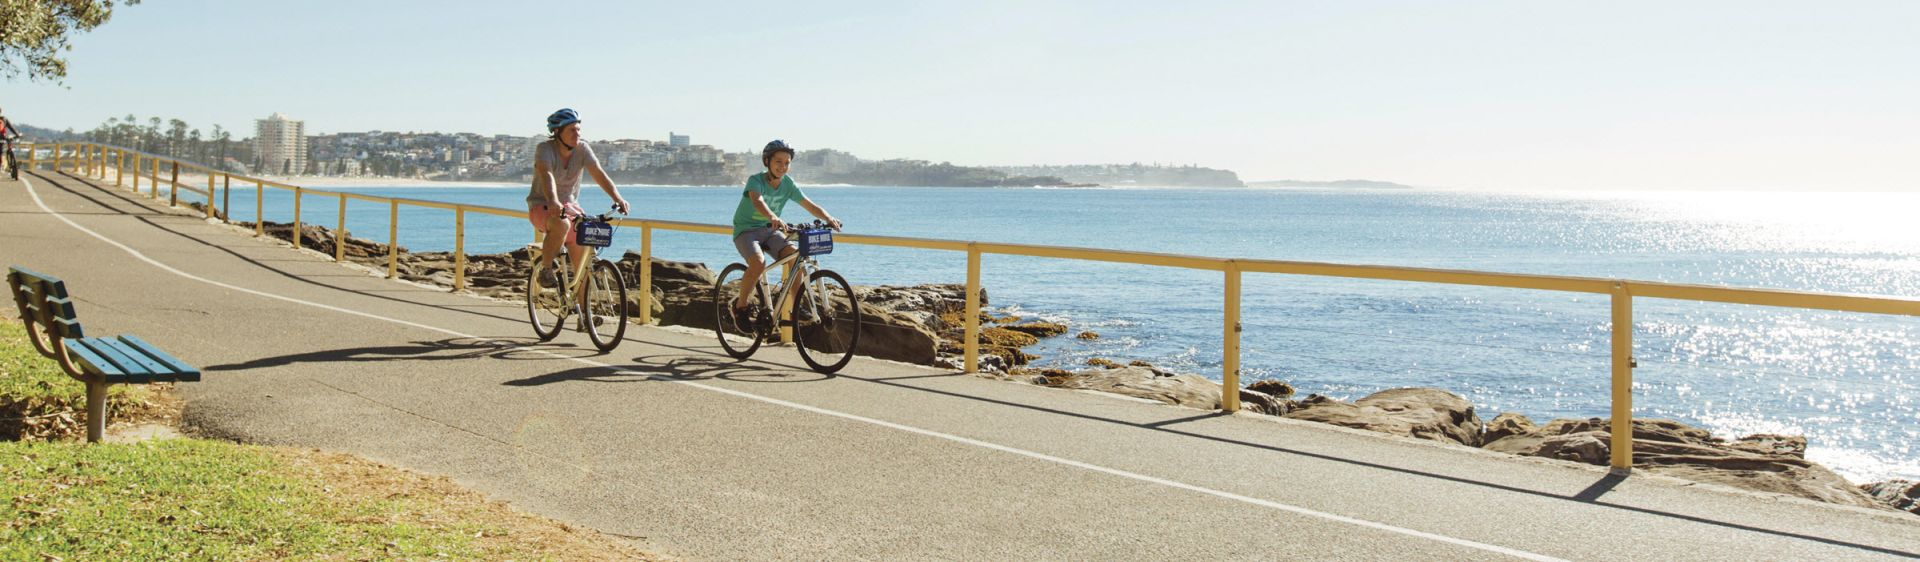 Father and son enjoying a bike ride in Manly, Sydney